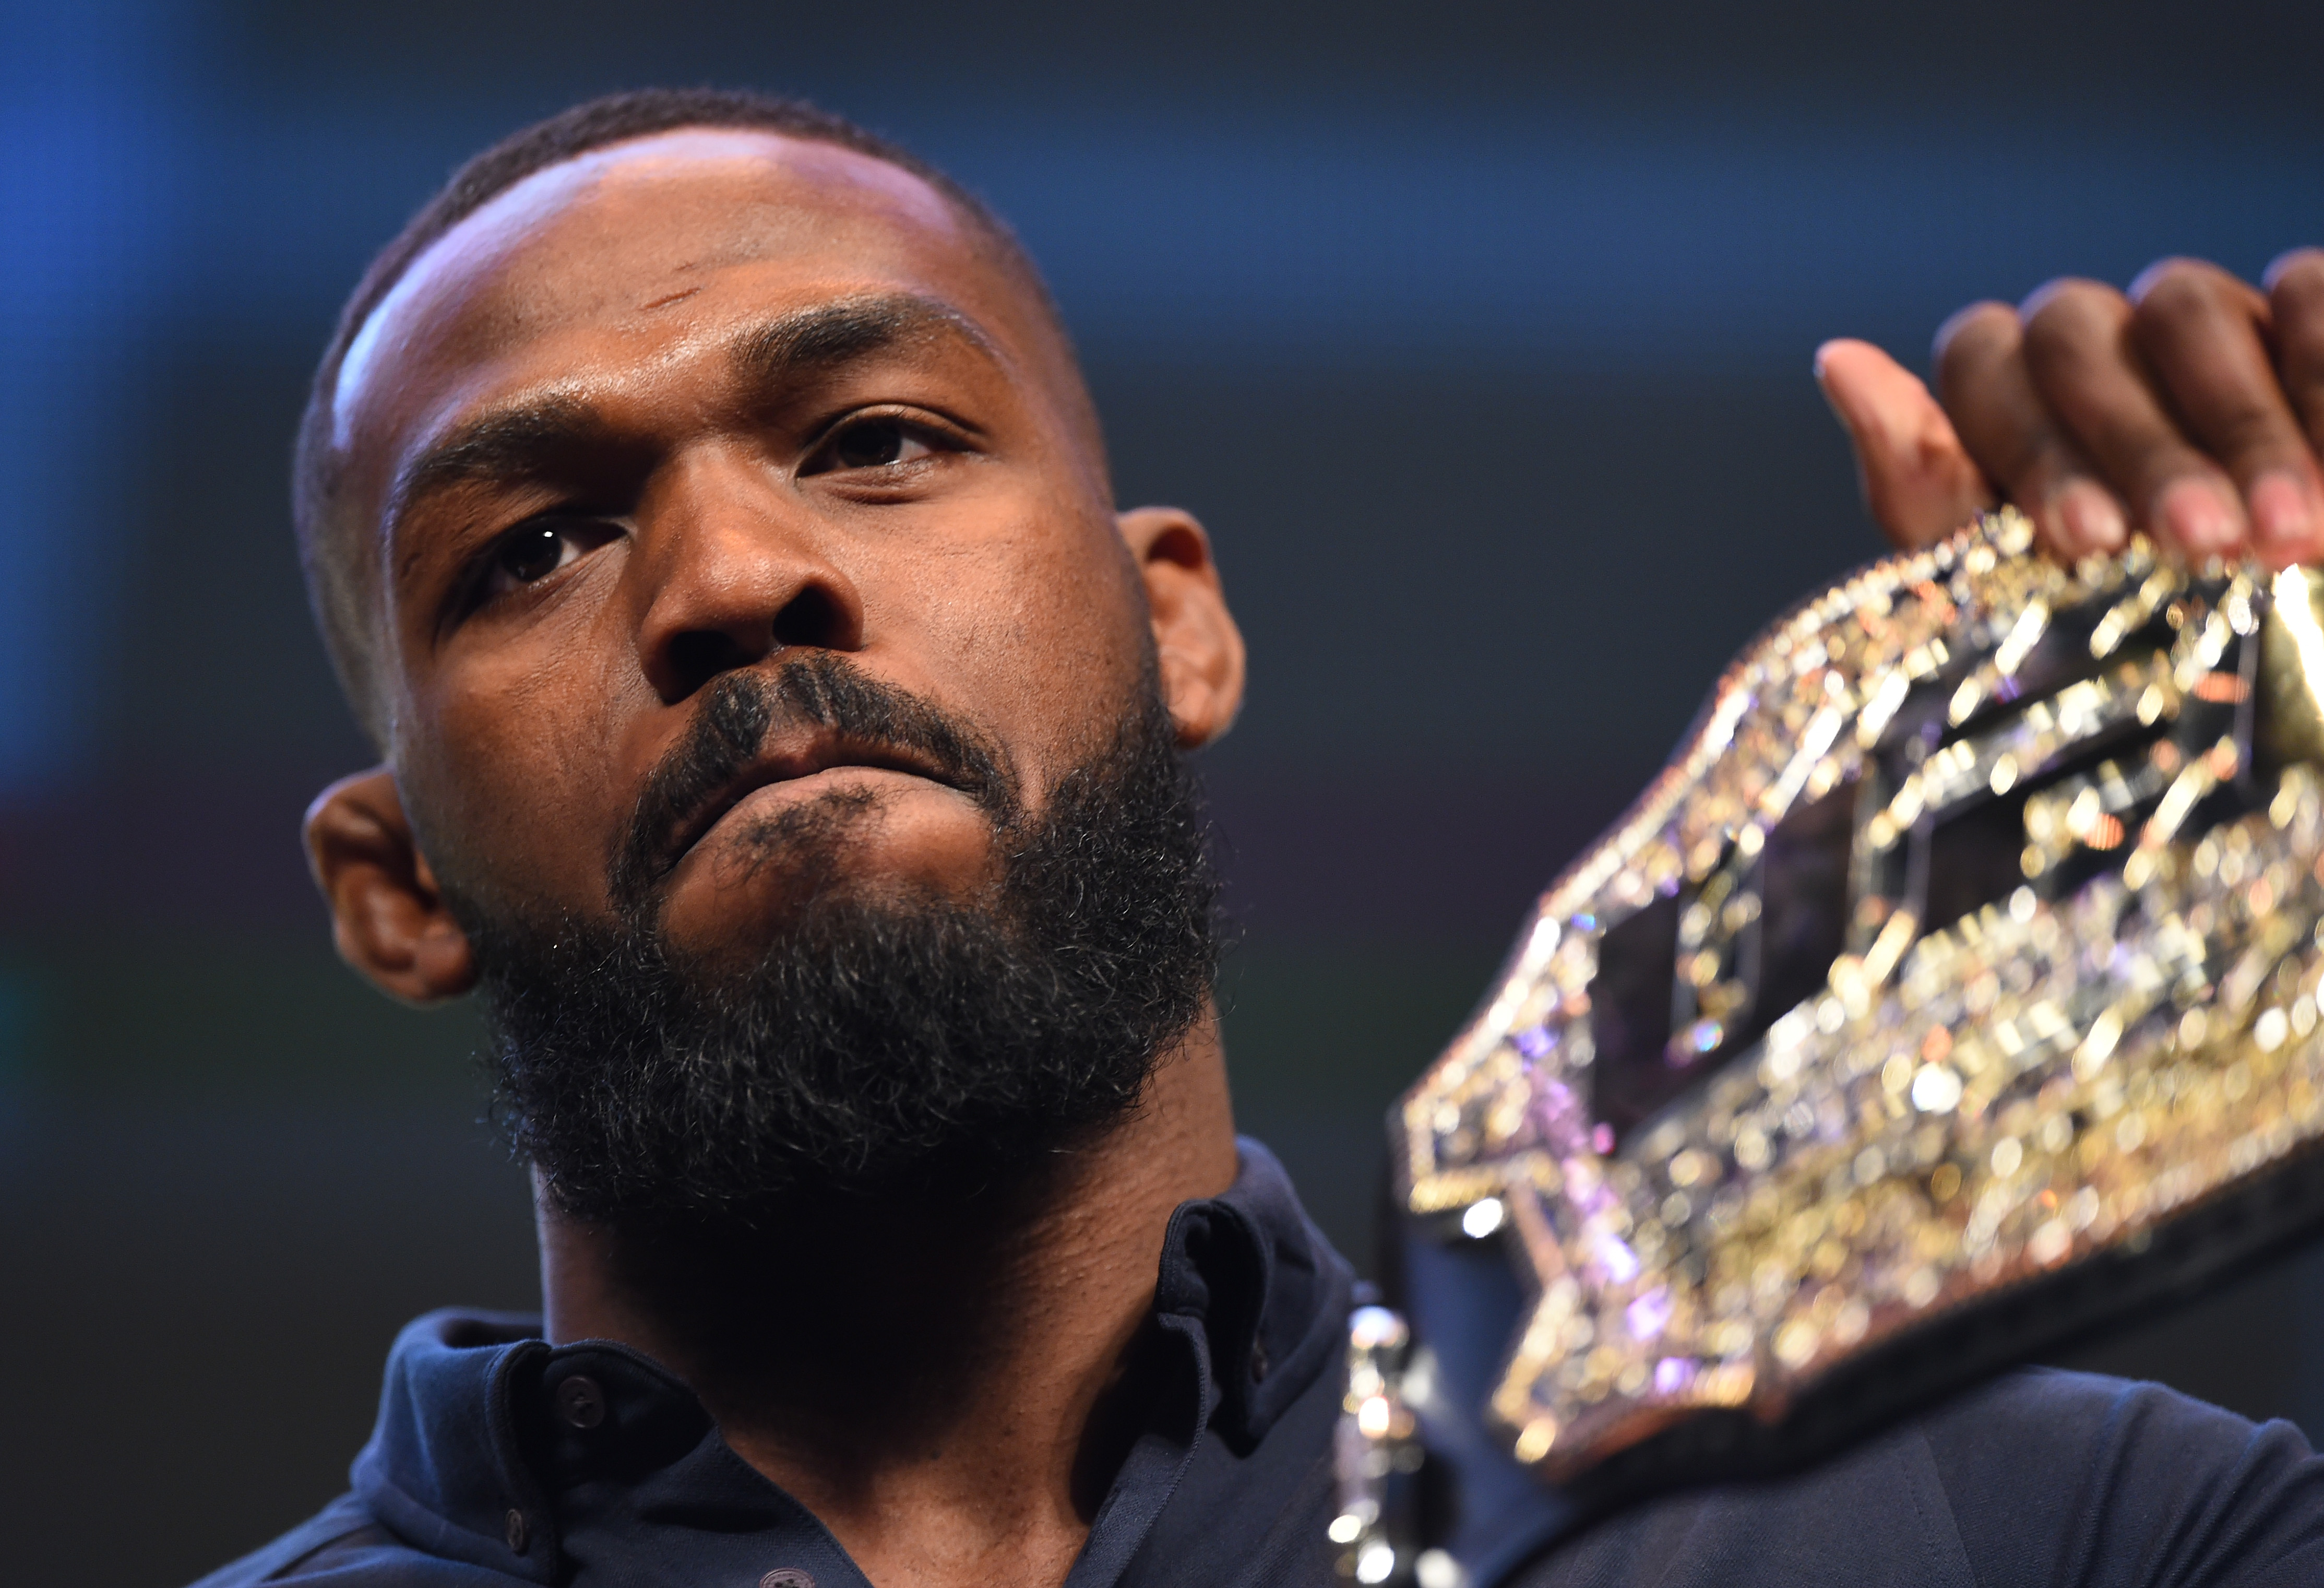 UFC star Jon Jones hoped for better ruling after USADA ban, but happy he will not be branded a cheater